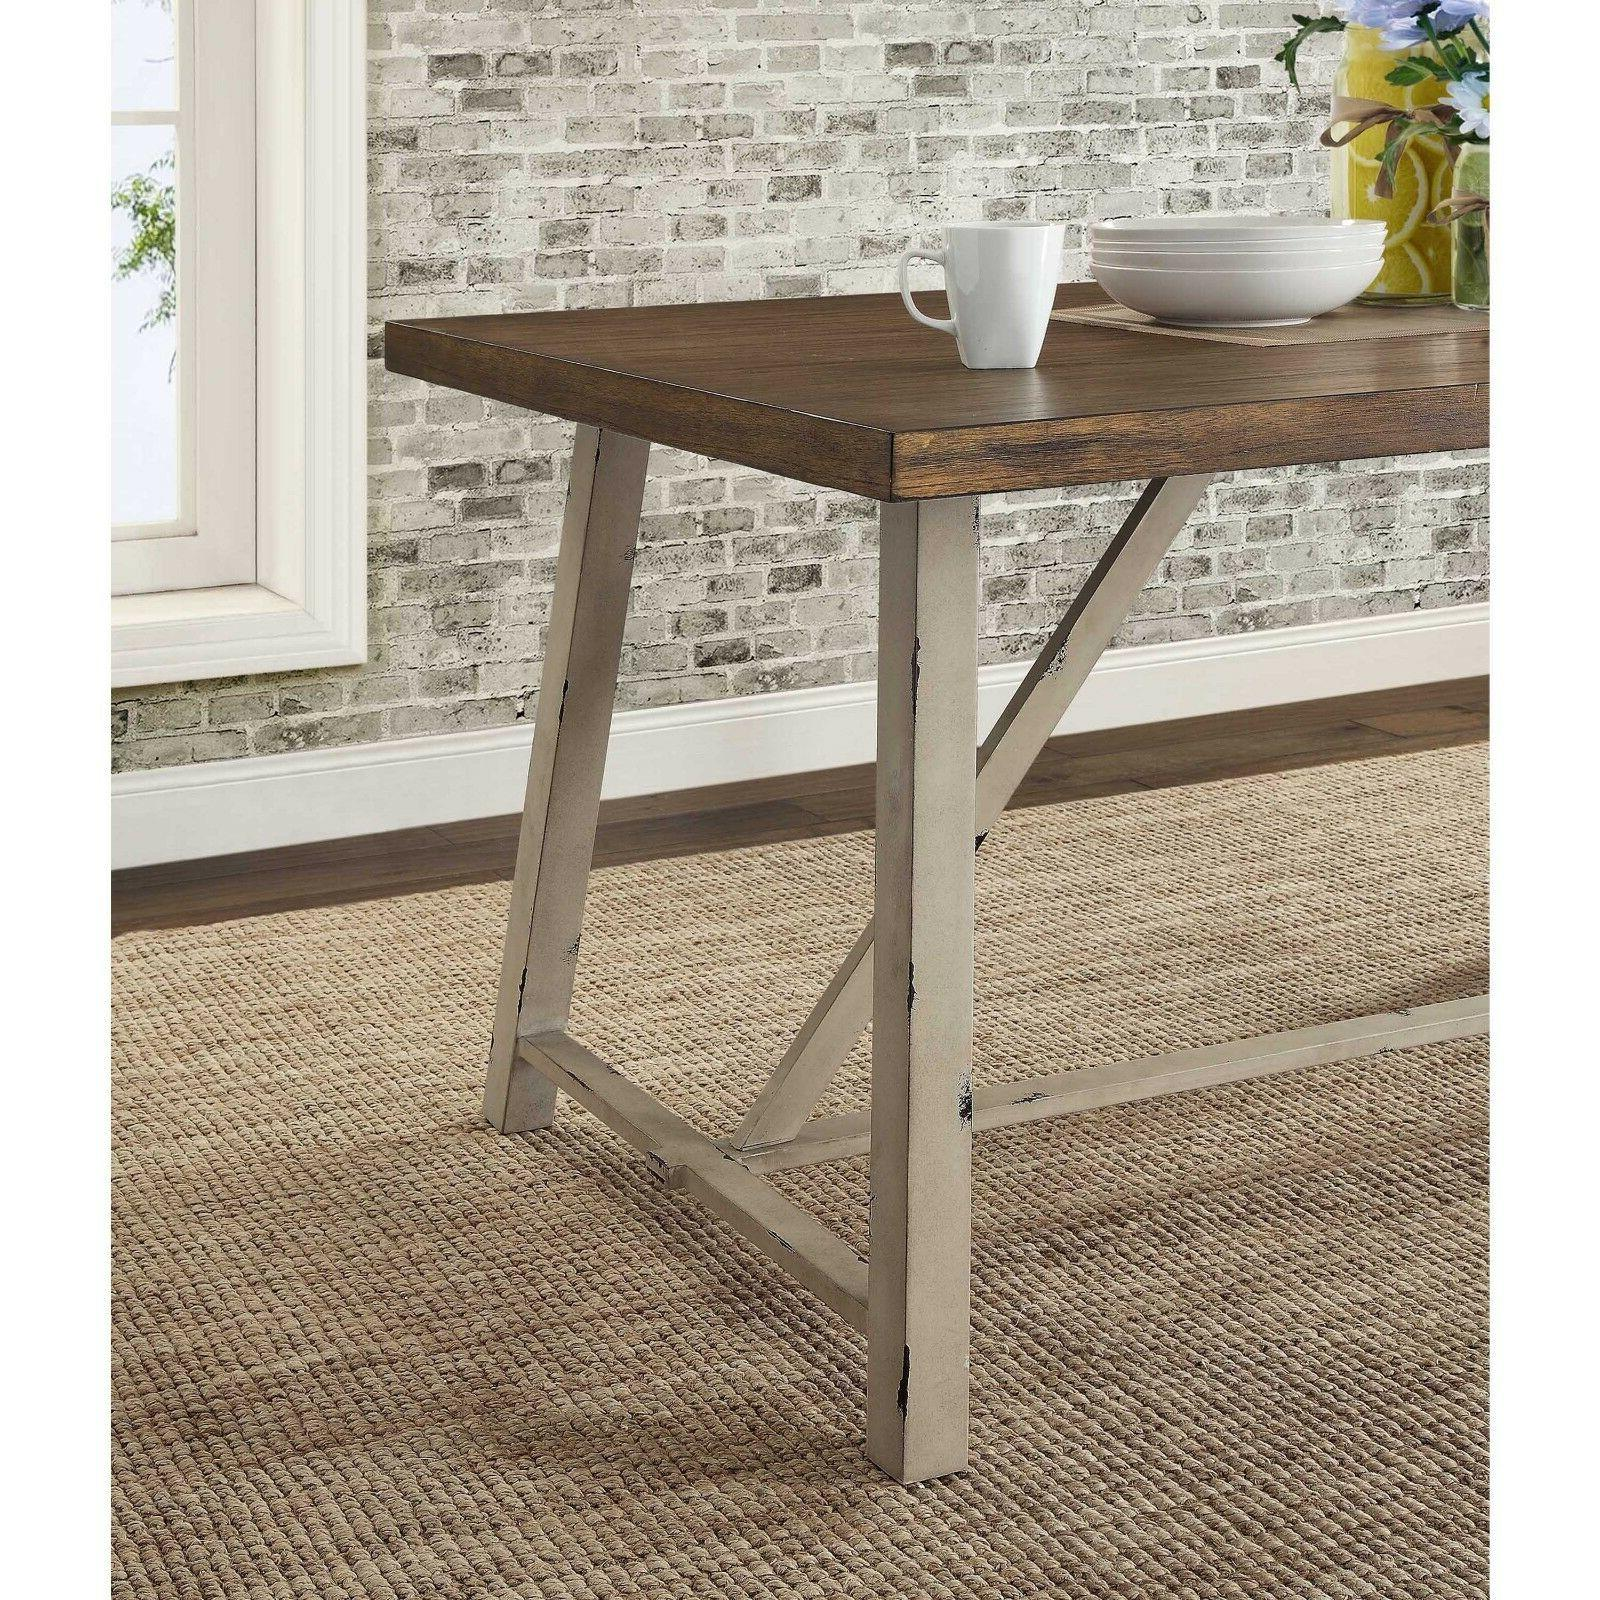 Dining Room Table Rustic Kitchen Tables Industrial Home Office